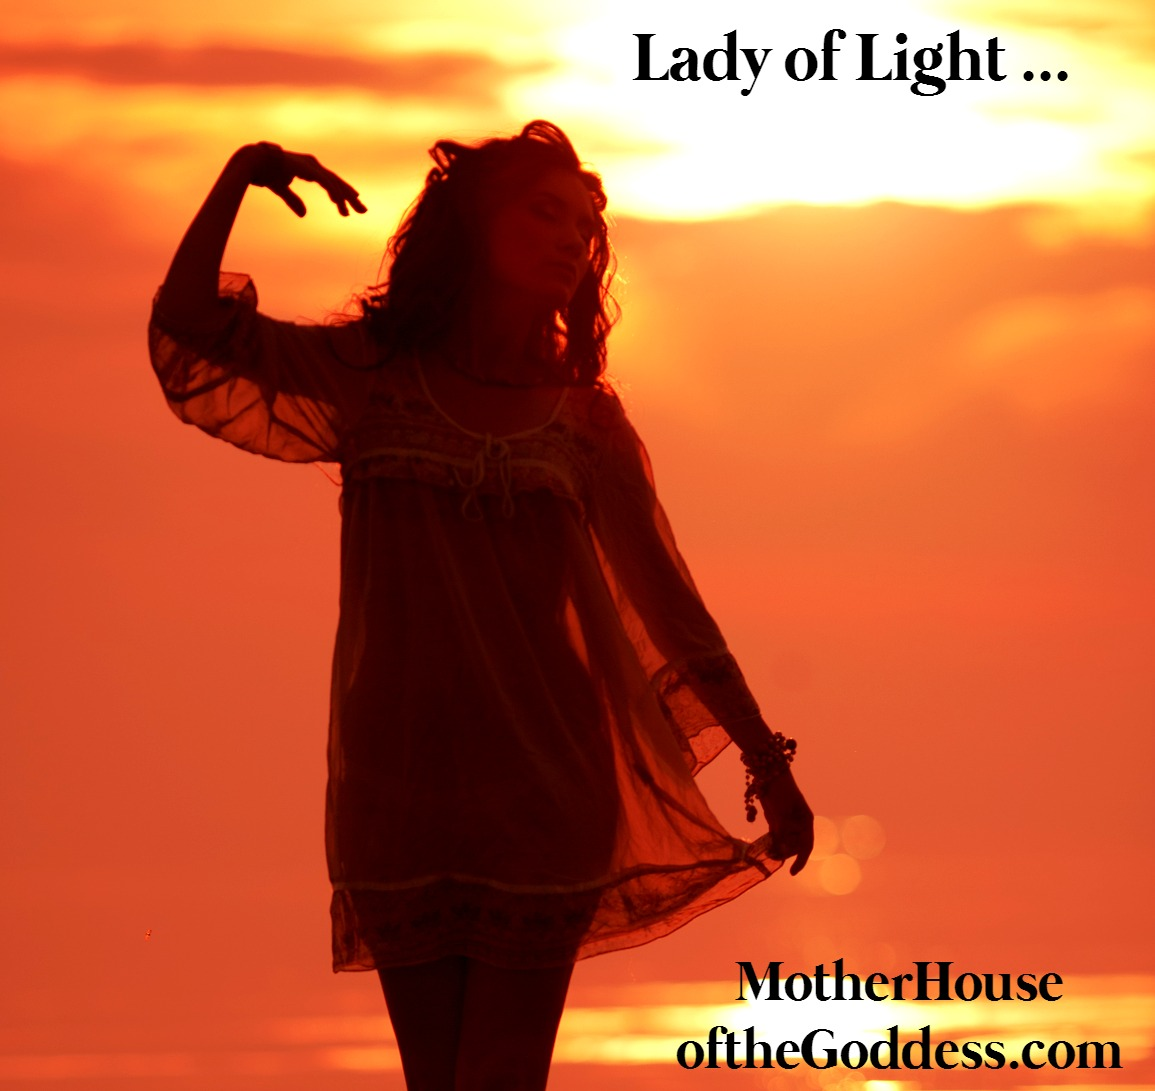 Lady of Light - Solar Goddesses for Summer Solstice by Susan Harper on MotherHouse of the Goddess